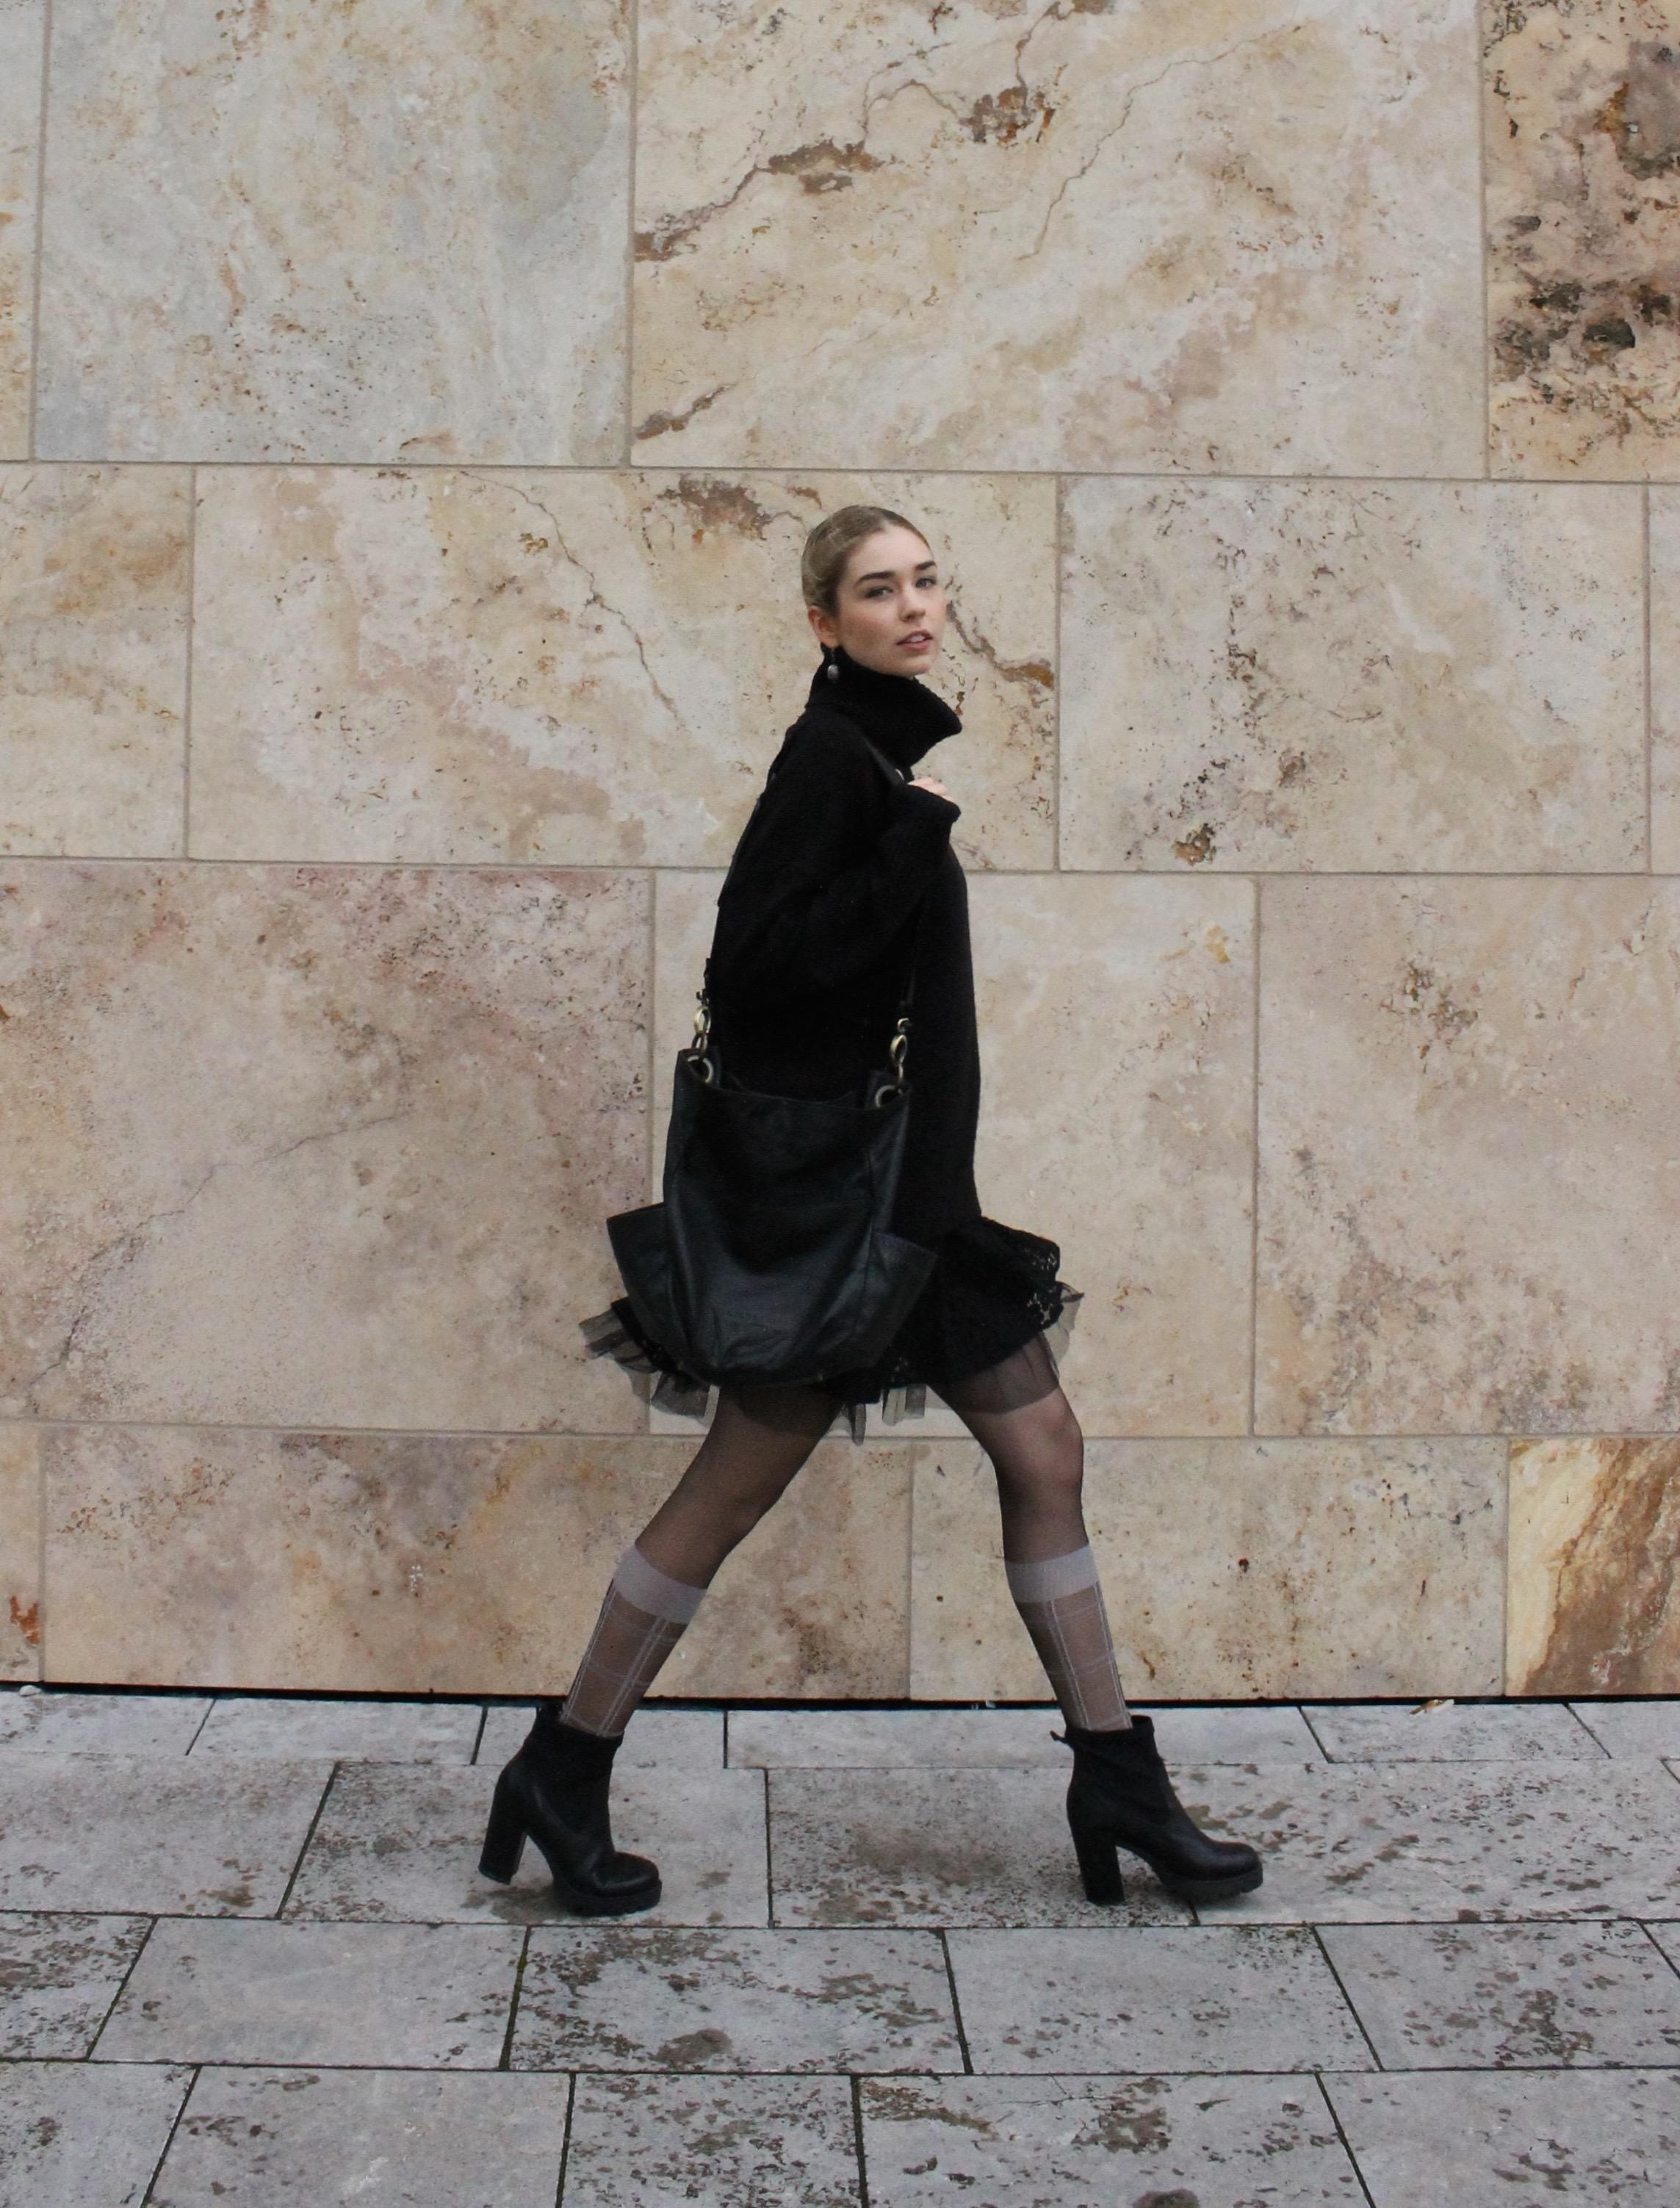 All Black Look für Herbst & Winter #ootd #darlingrina #allblack #lookbook #bloggerstyle #highfashion #fashionblogger